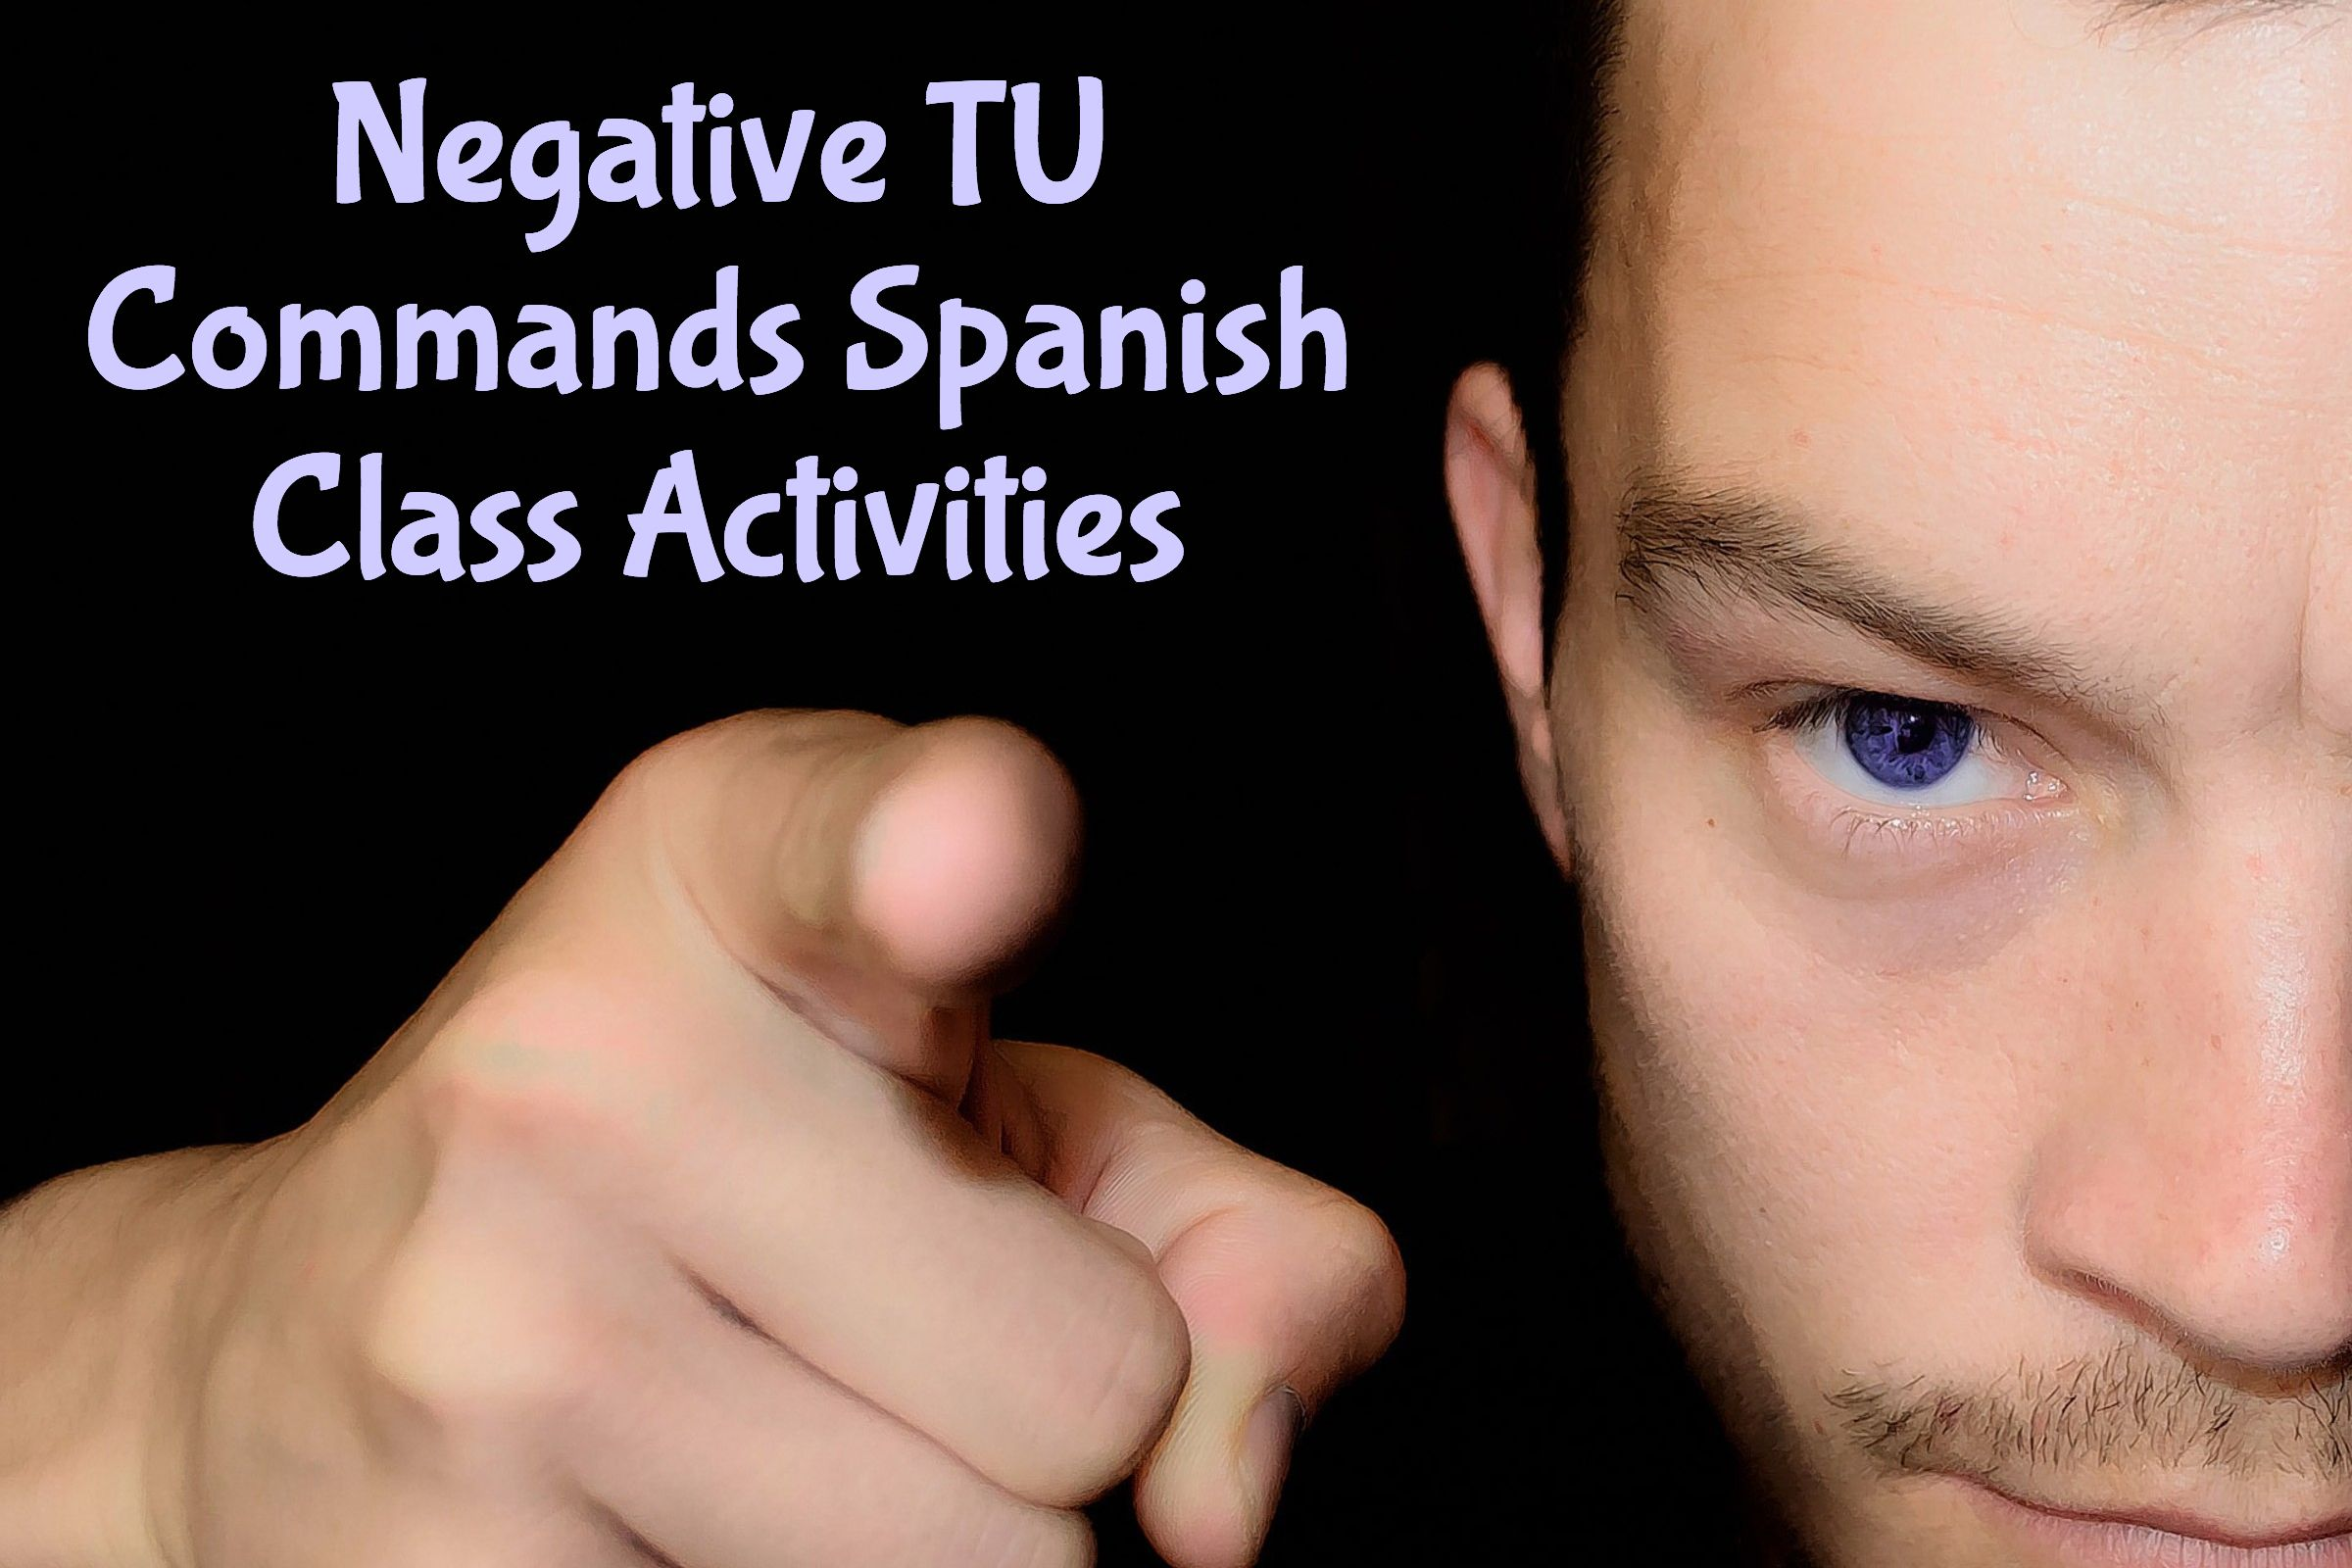 Negative Tu Commands Spanish Class Activities